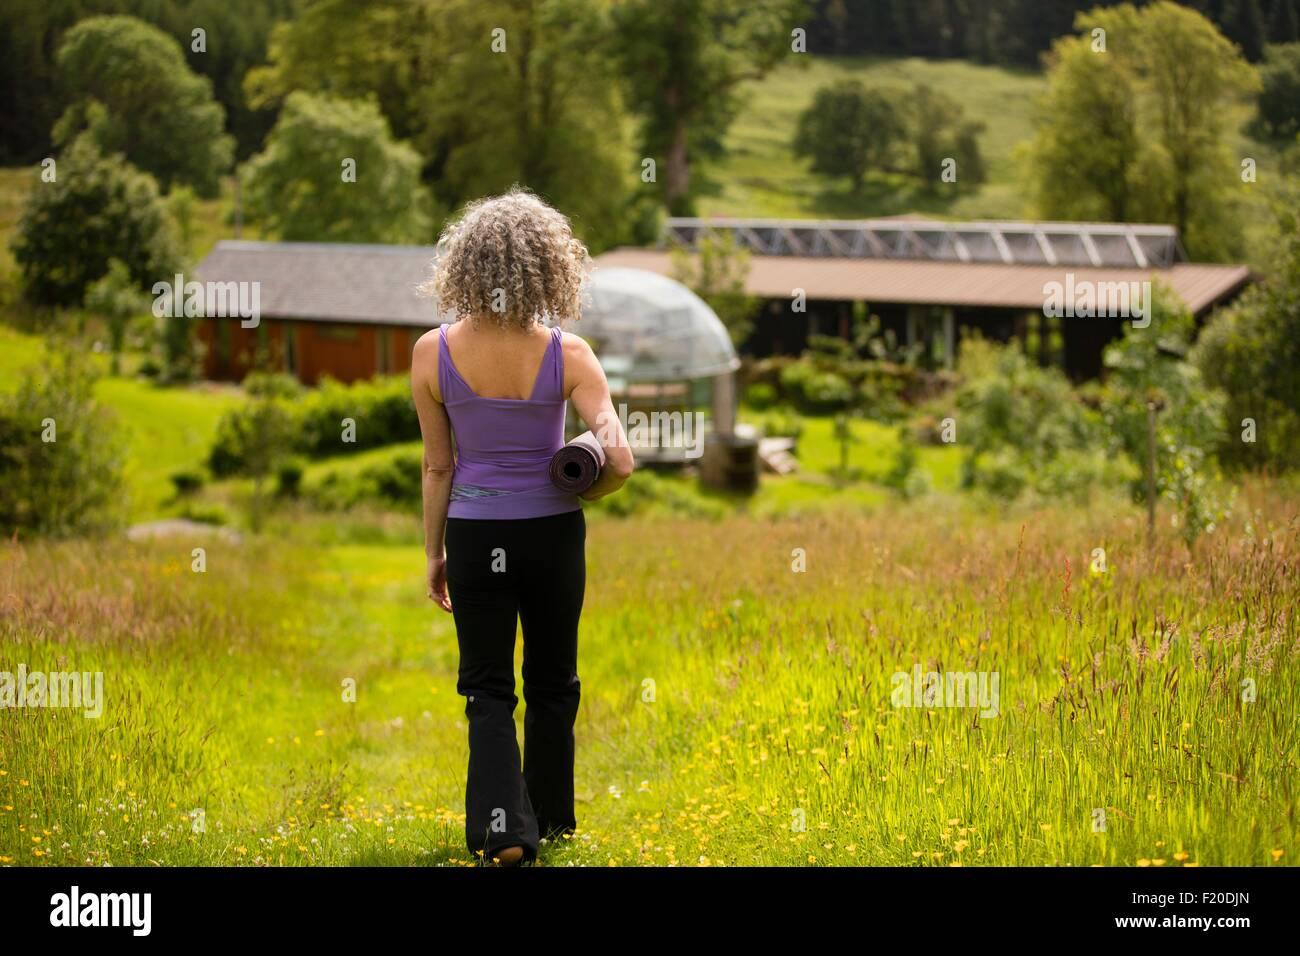 Rear view of mature woman carrying yoga mat walking in eco lodge field - Stock Image